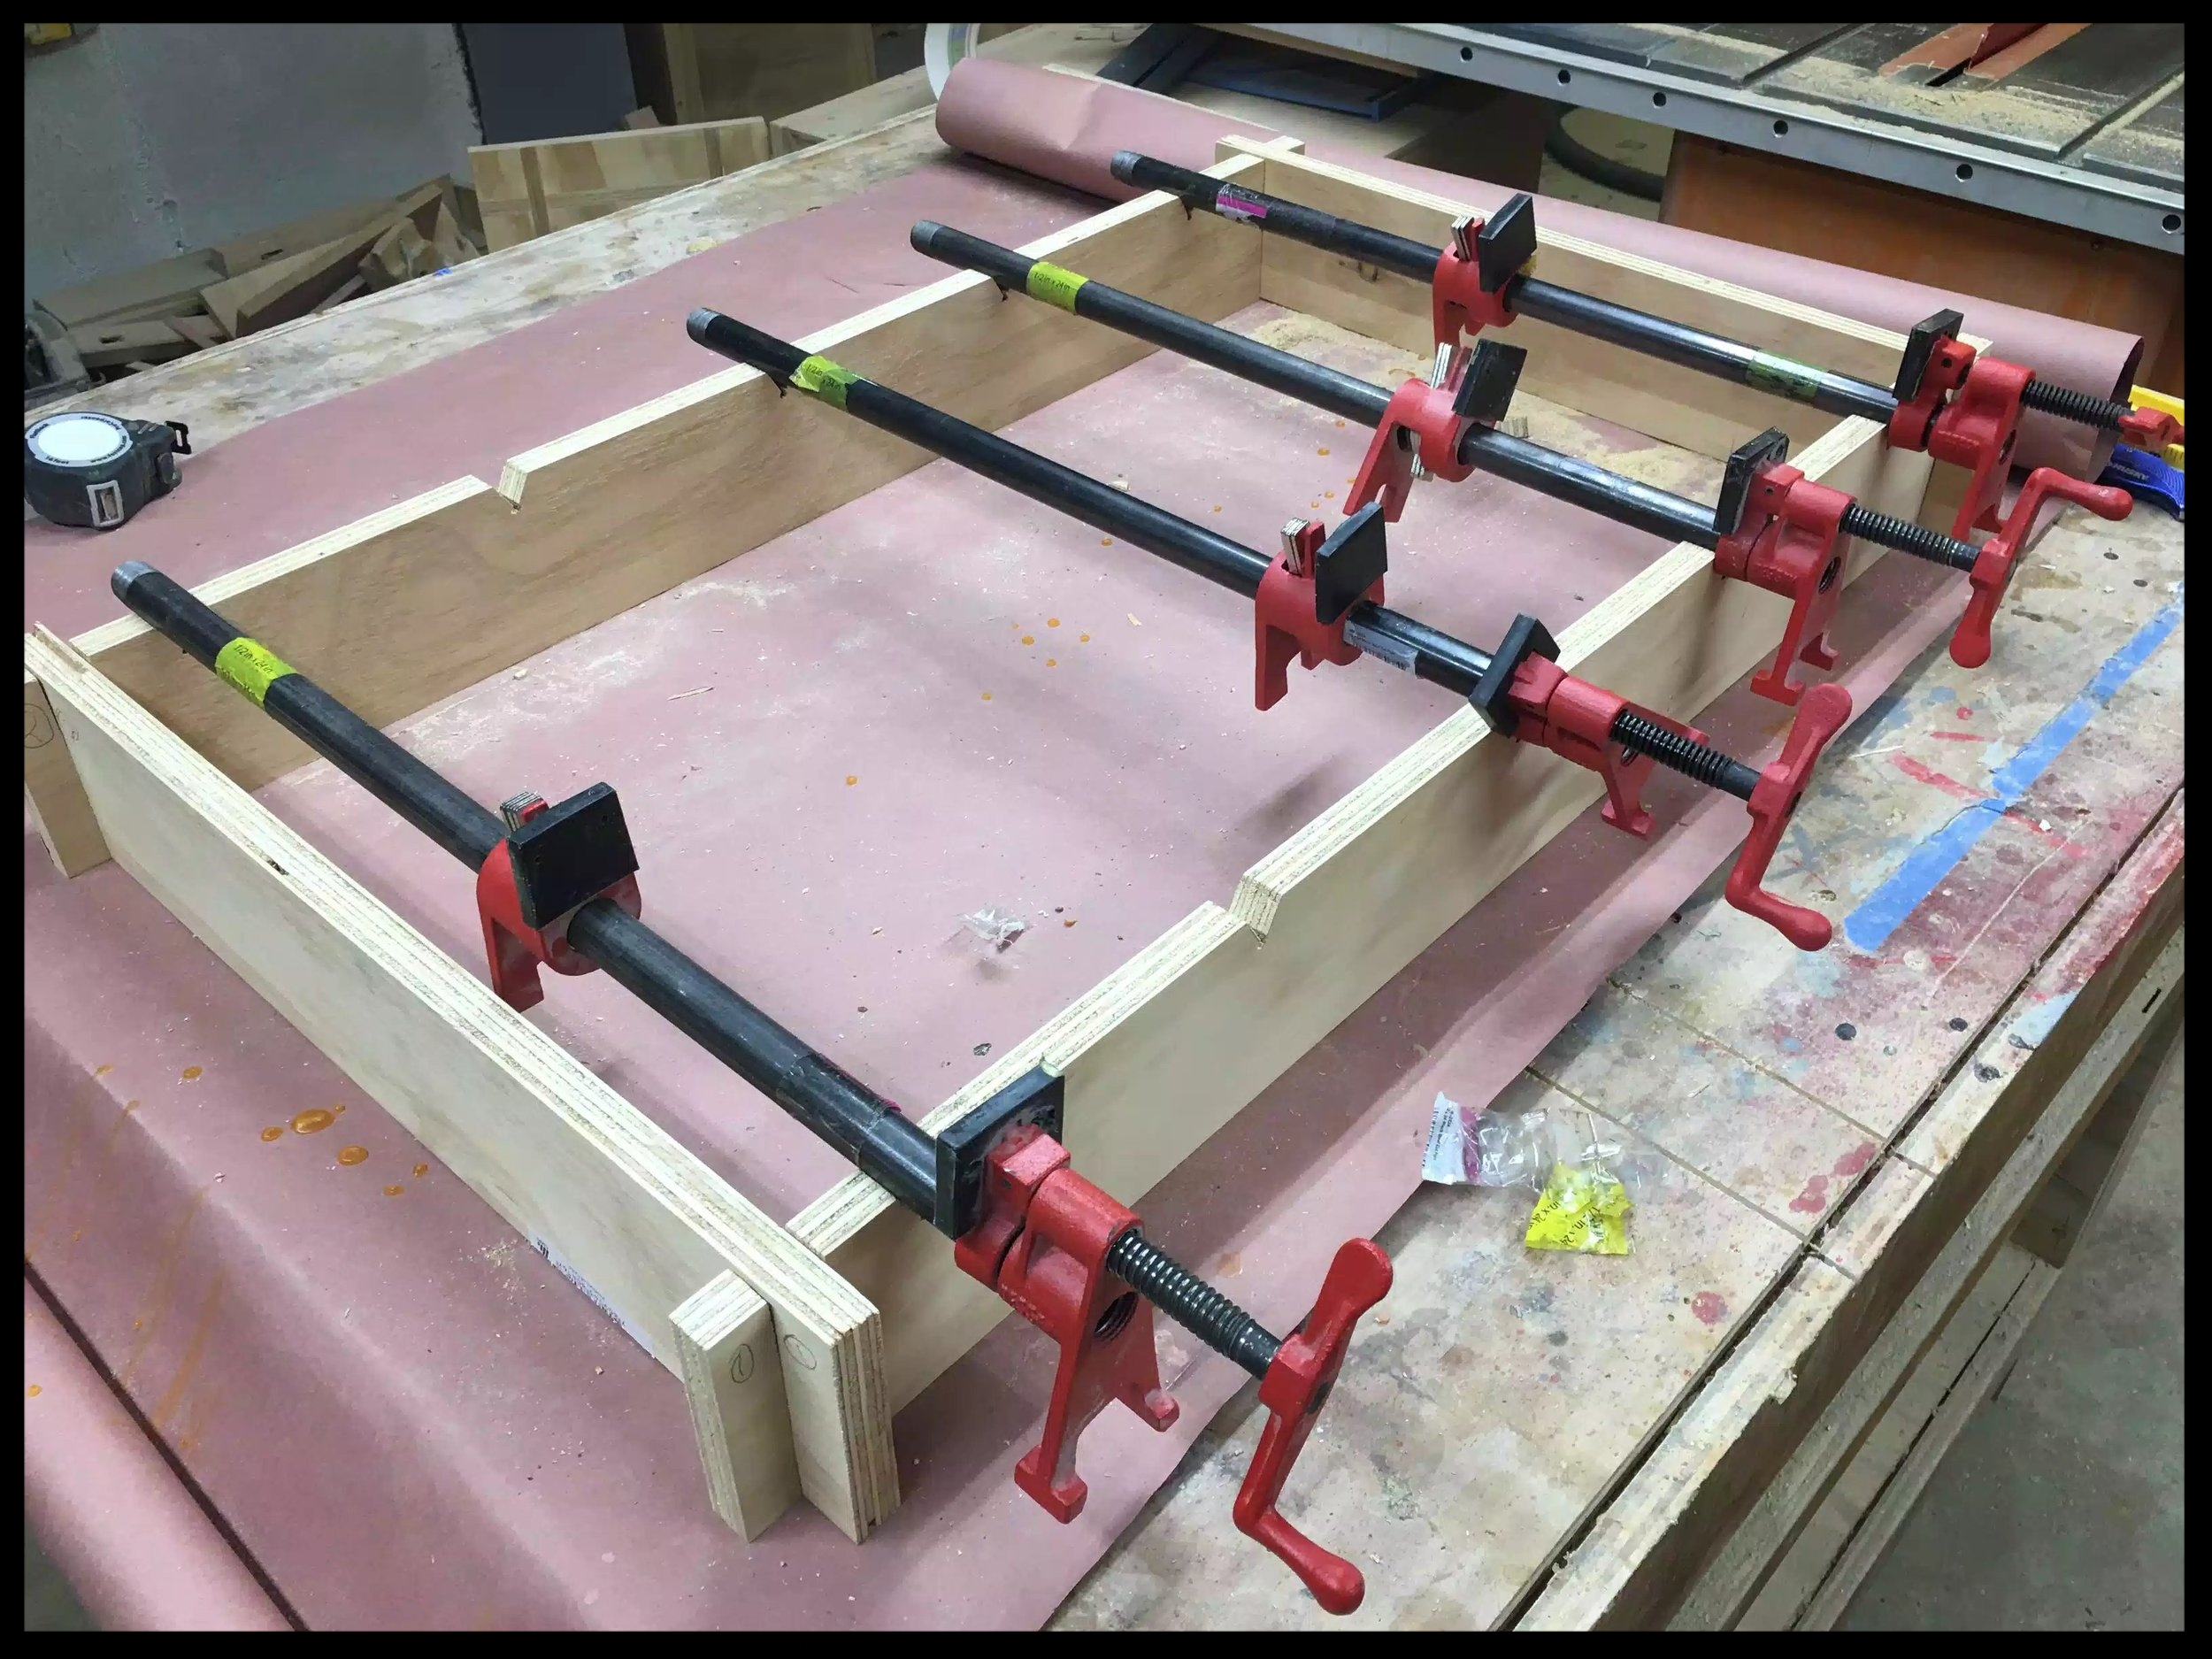 Here is the finished clamping jig